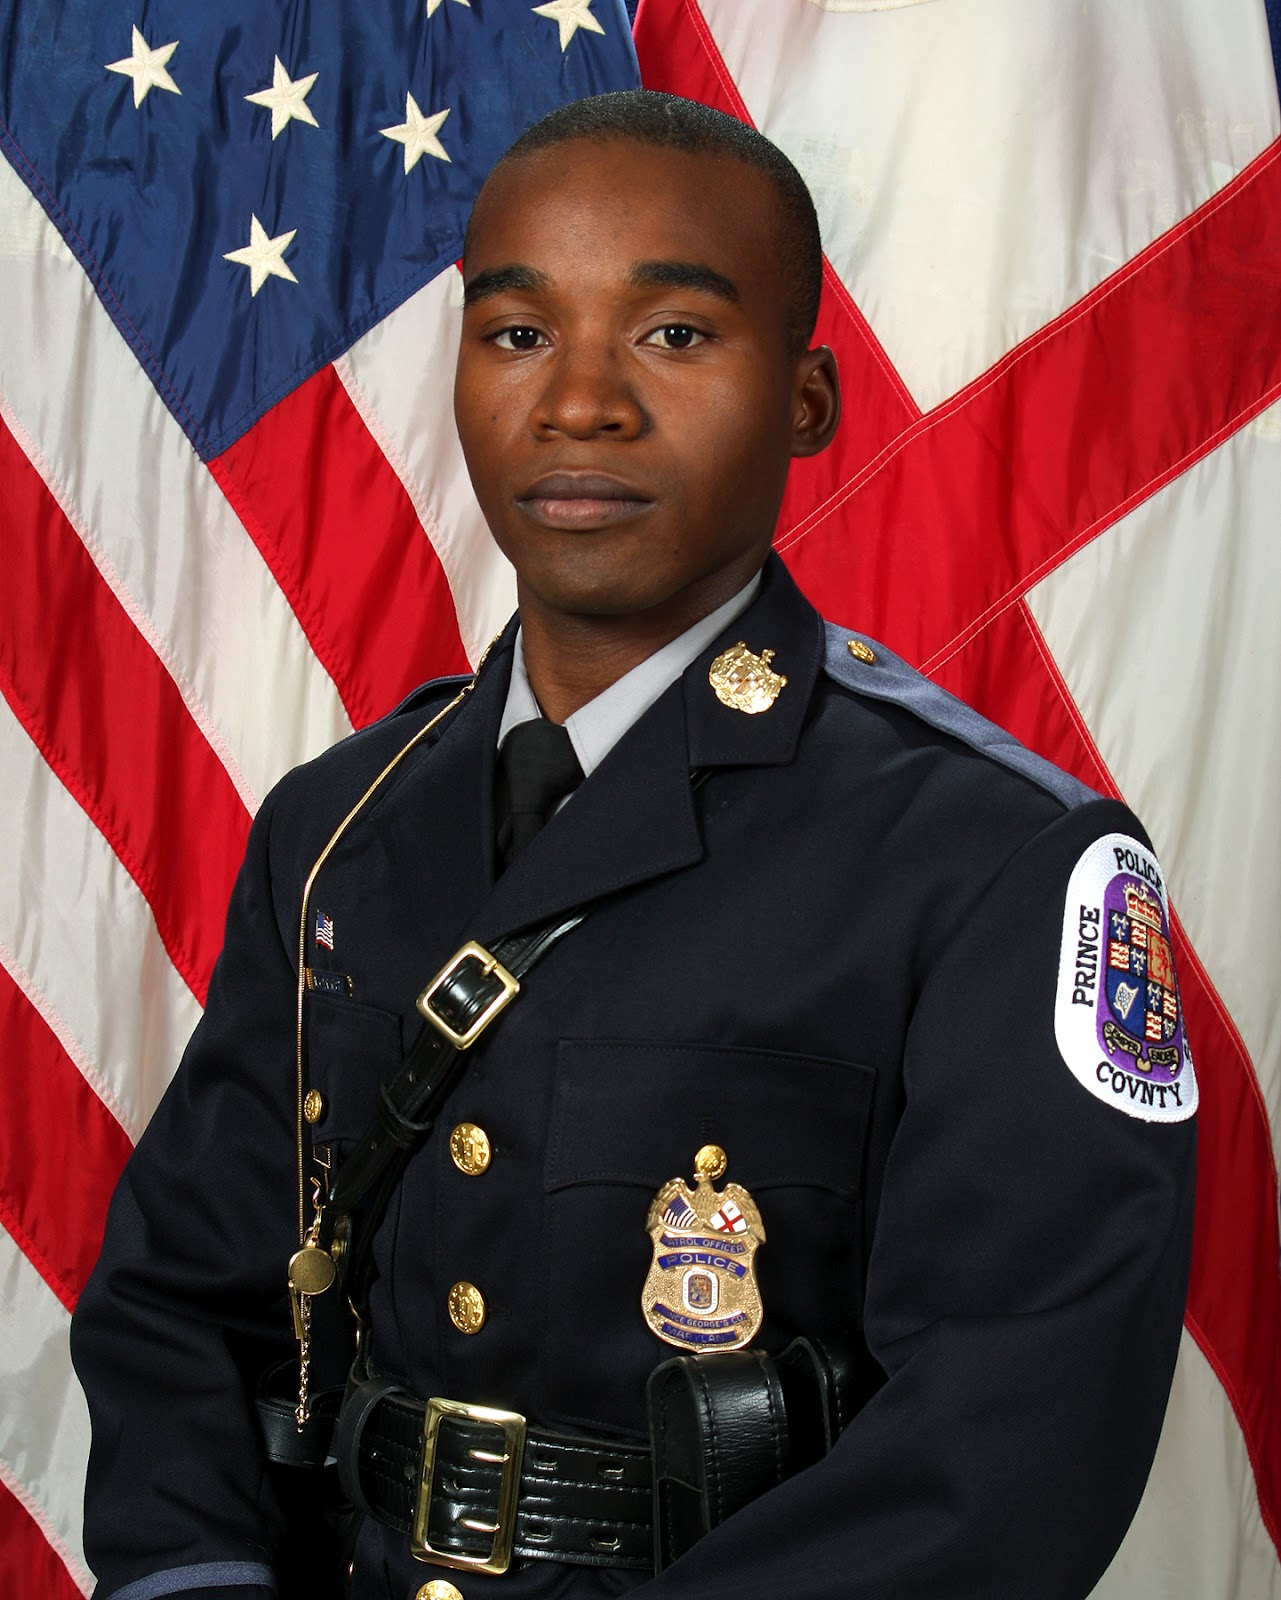 Pgpd News August 2012